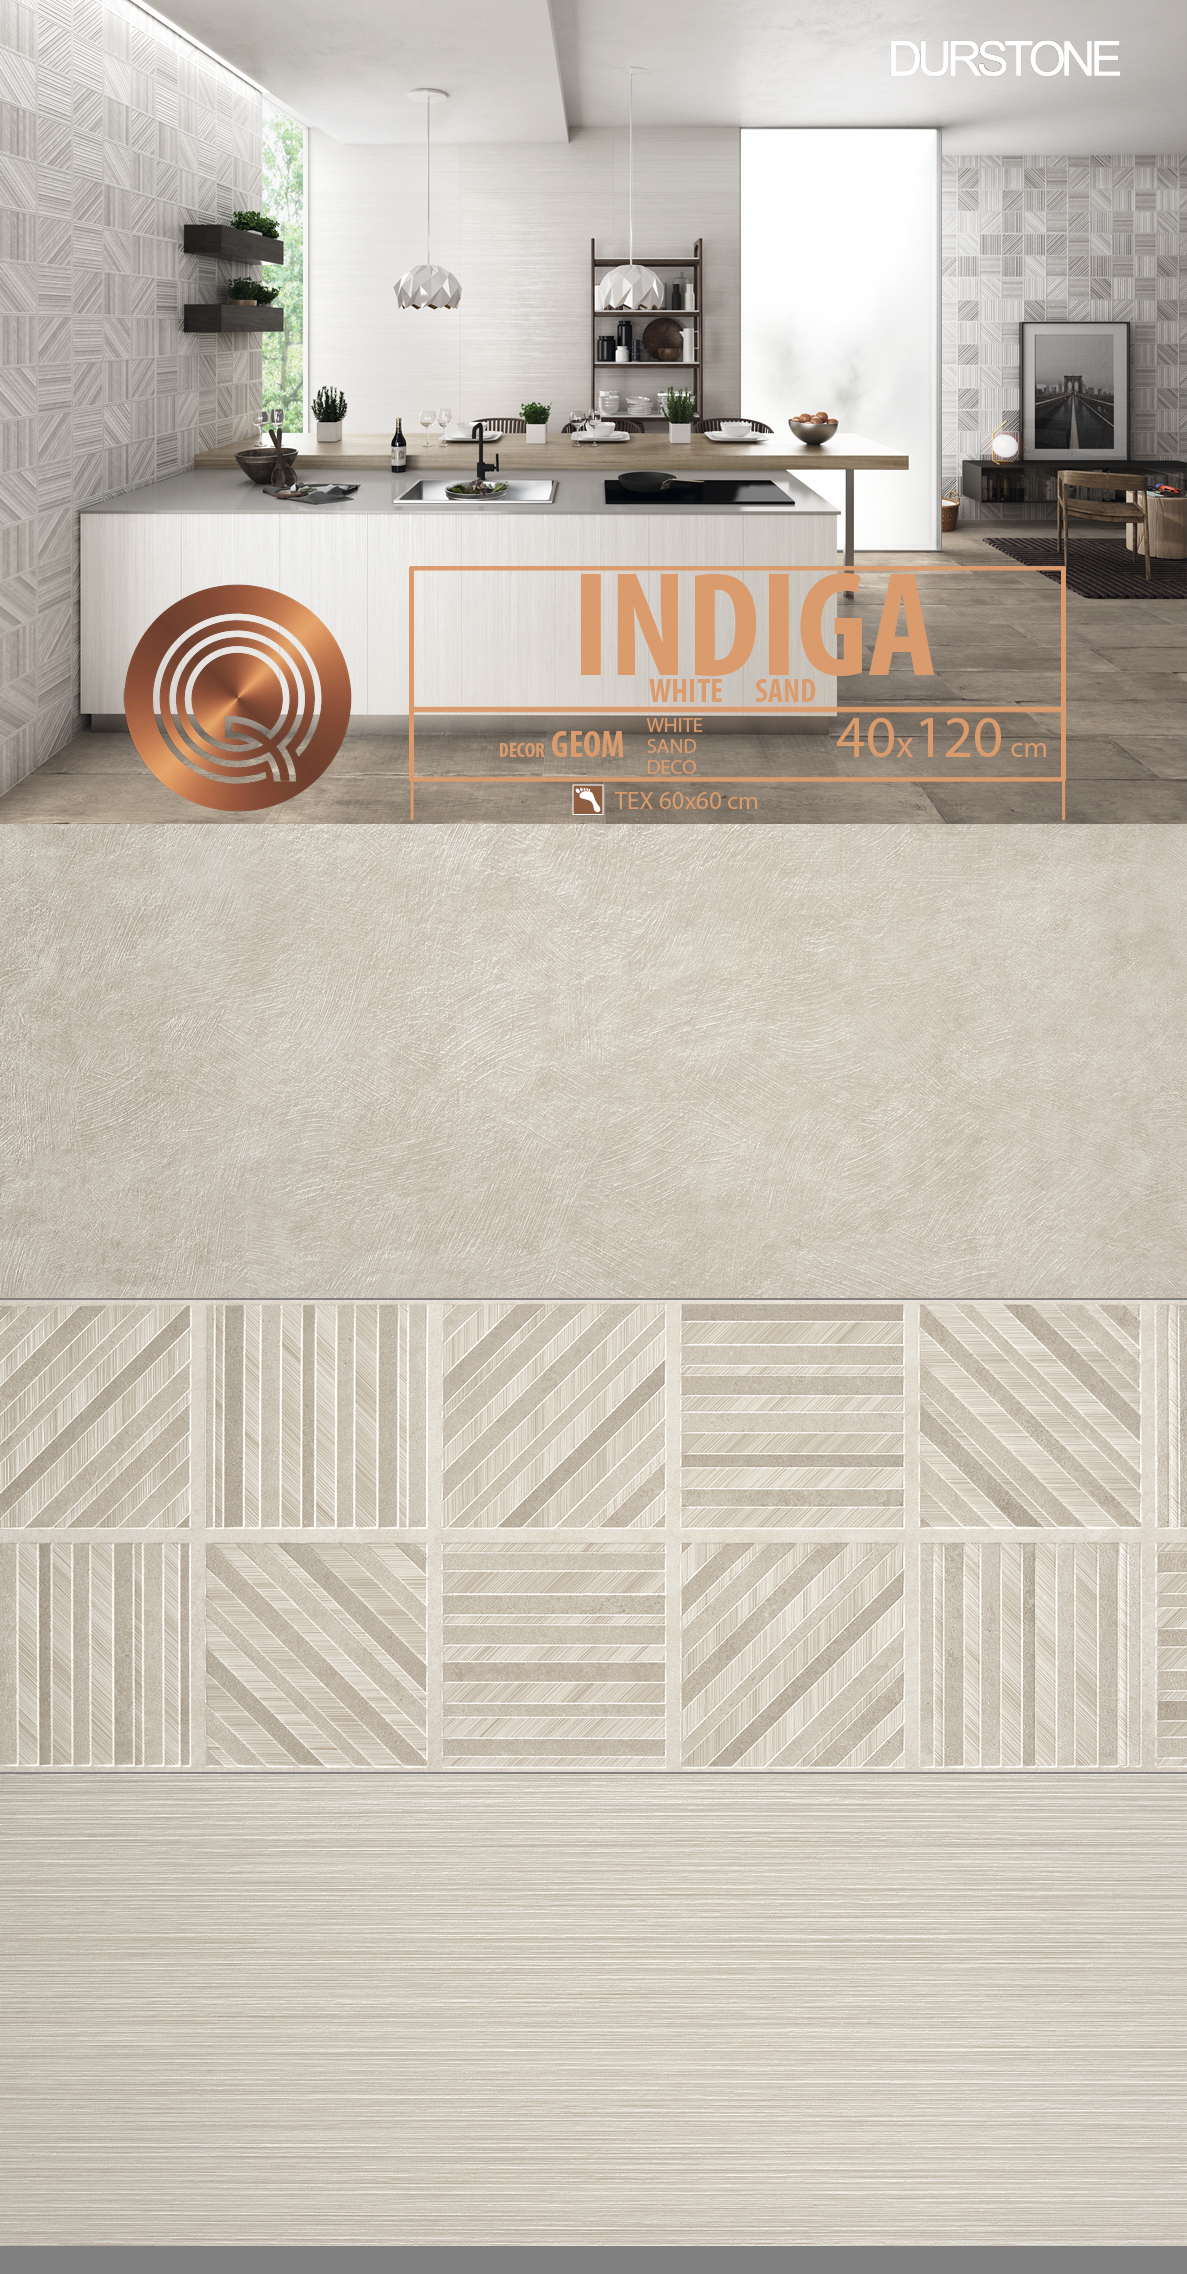 6050 RV PANEL MIX INDIGA / GEOM / LINES SAND Cod. 6050